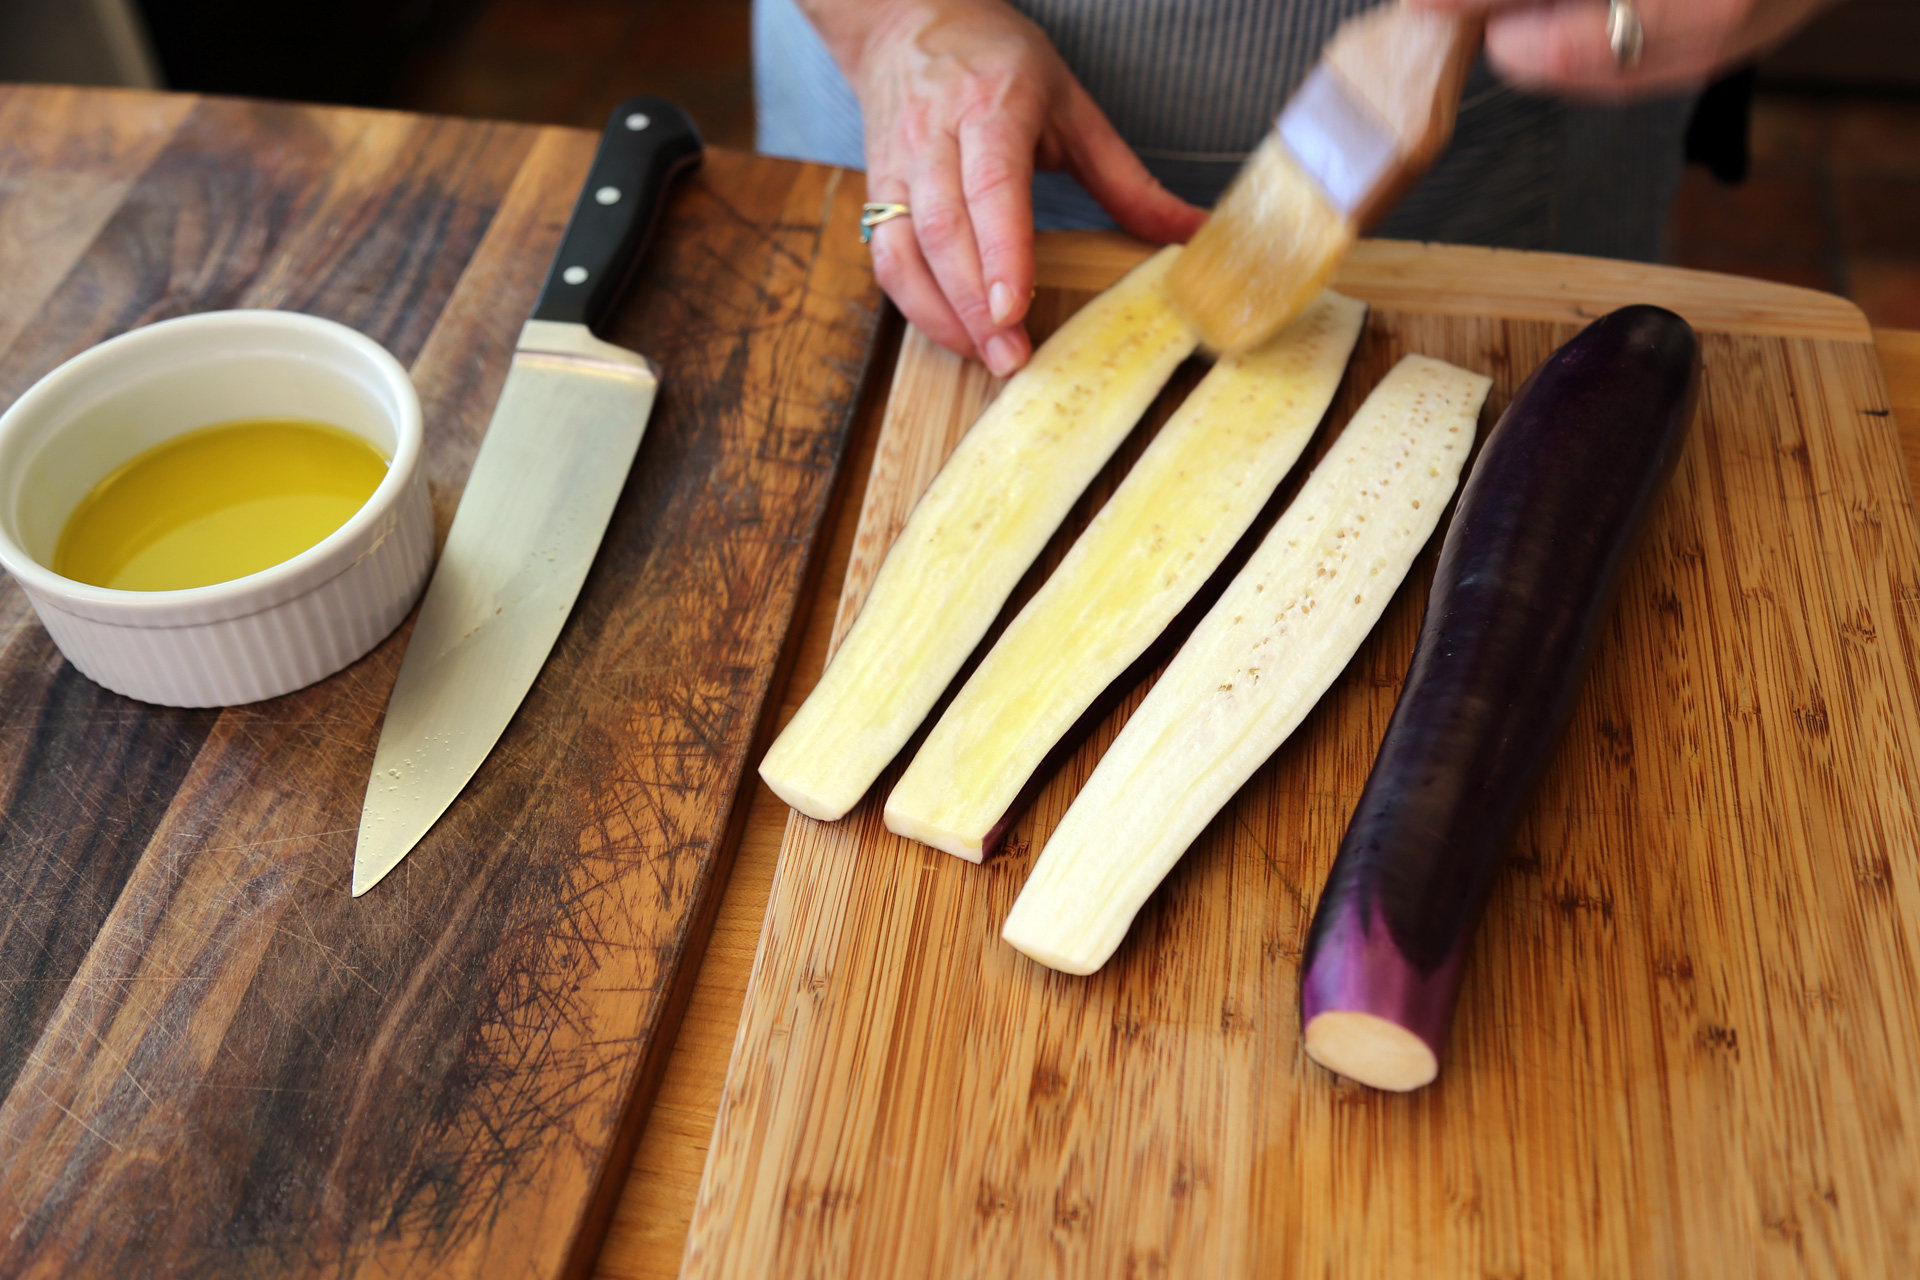 Trim the eggplant and slice it lengthwise into 1/2-inch pieces. Brush it with olive oil.